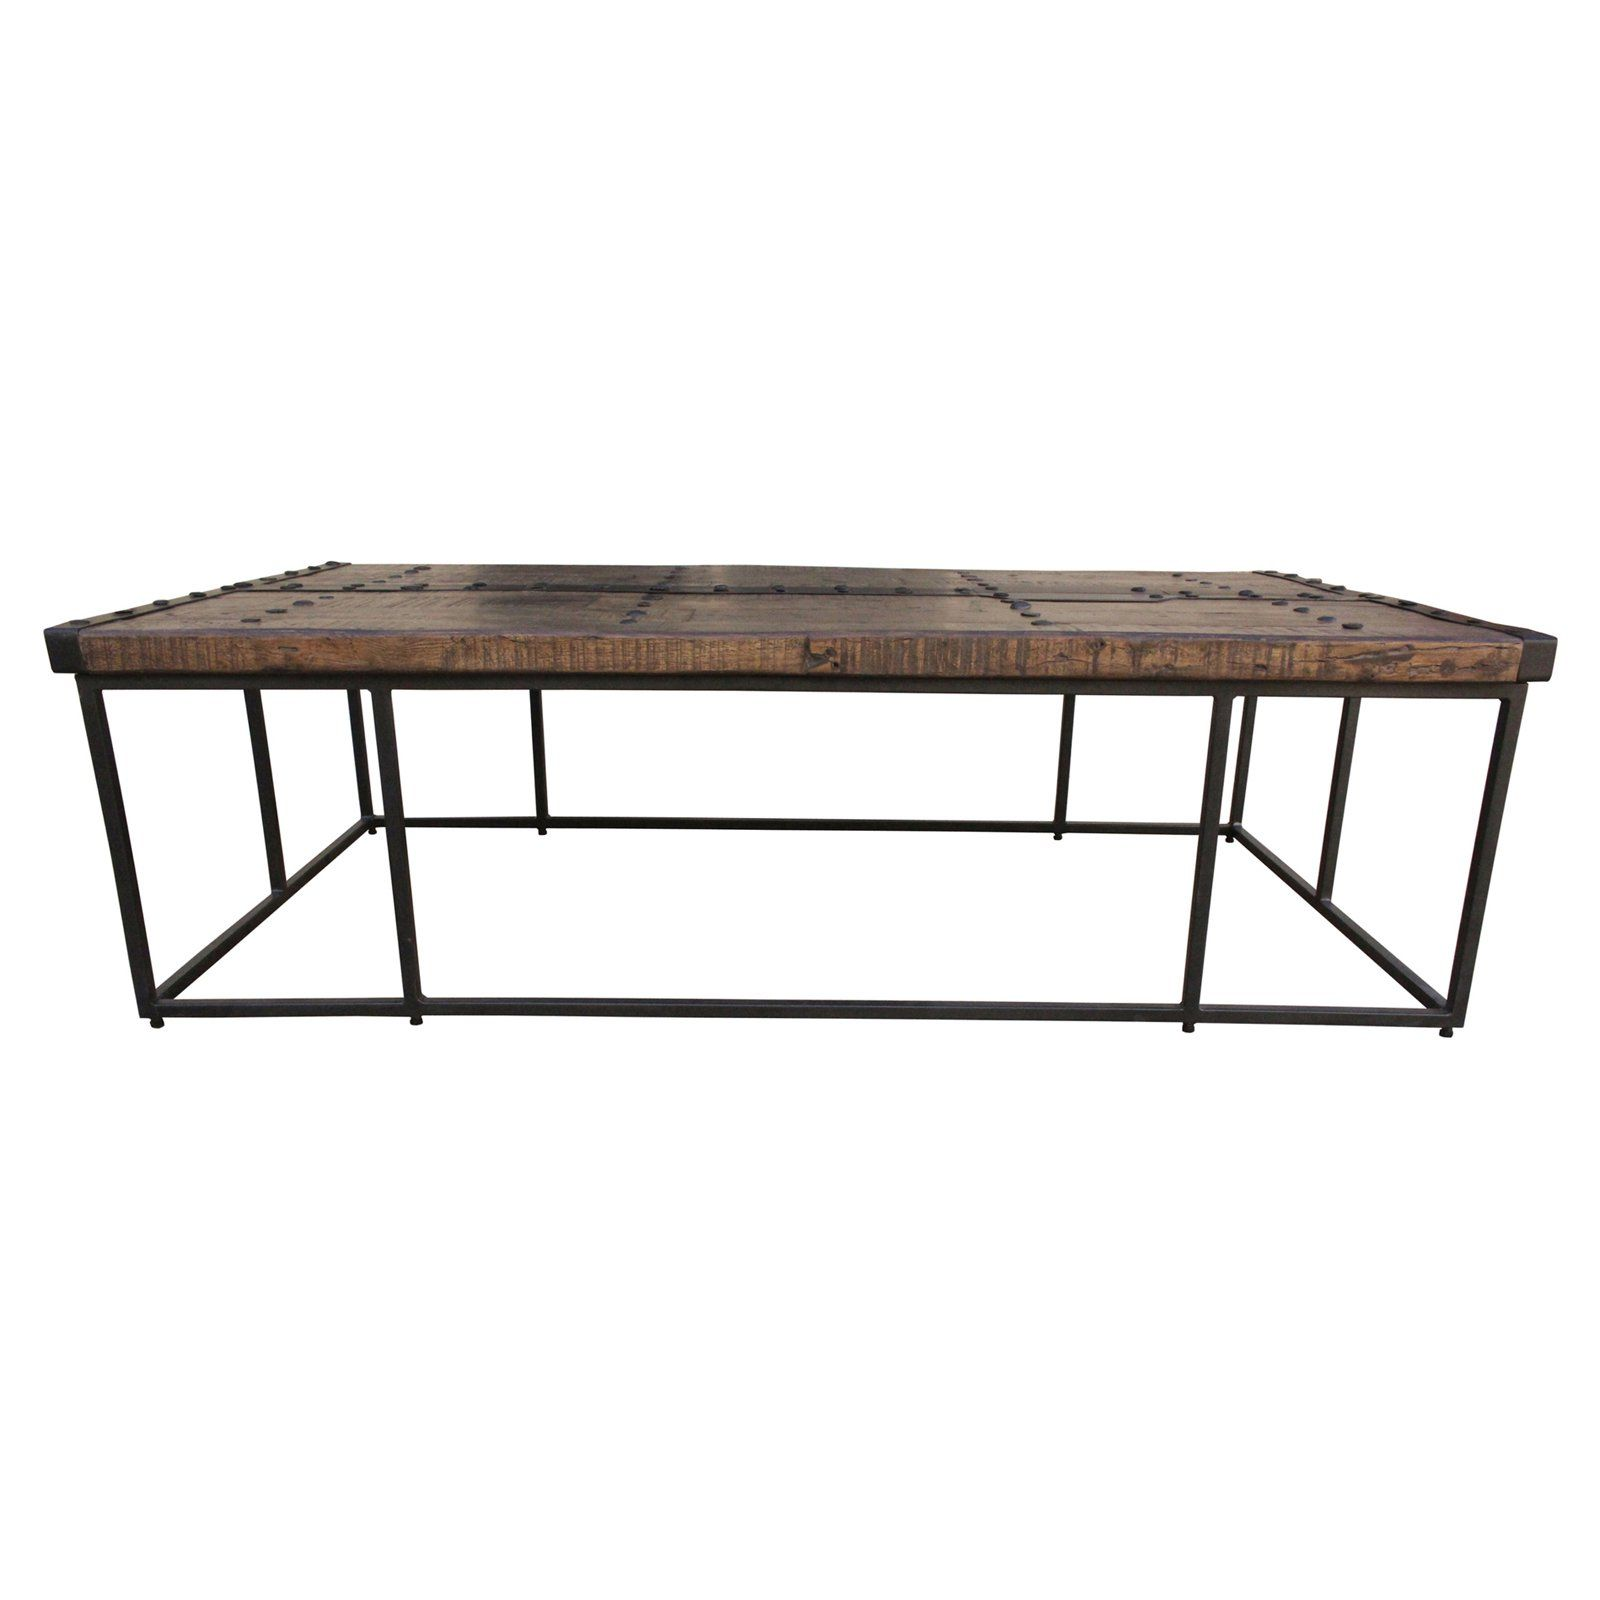 Cool Moes Home Collection Templar Coffee Table In 2019 Products Caraccident5 Cool Chair Designs And Ideas Caraccident5Info